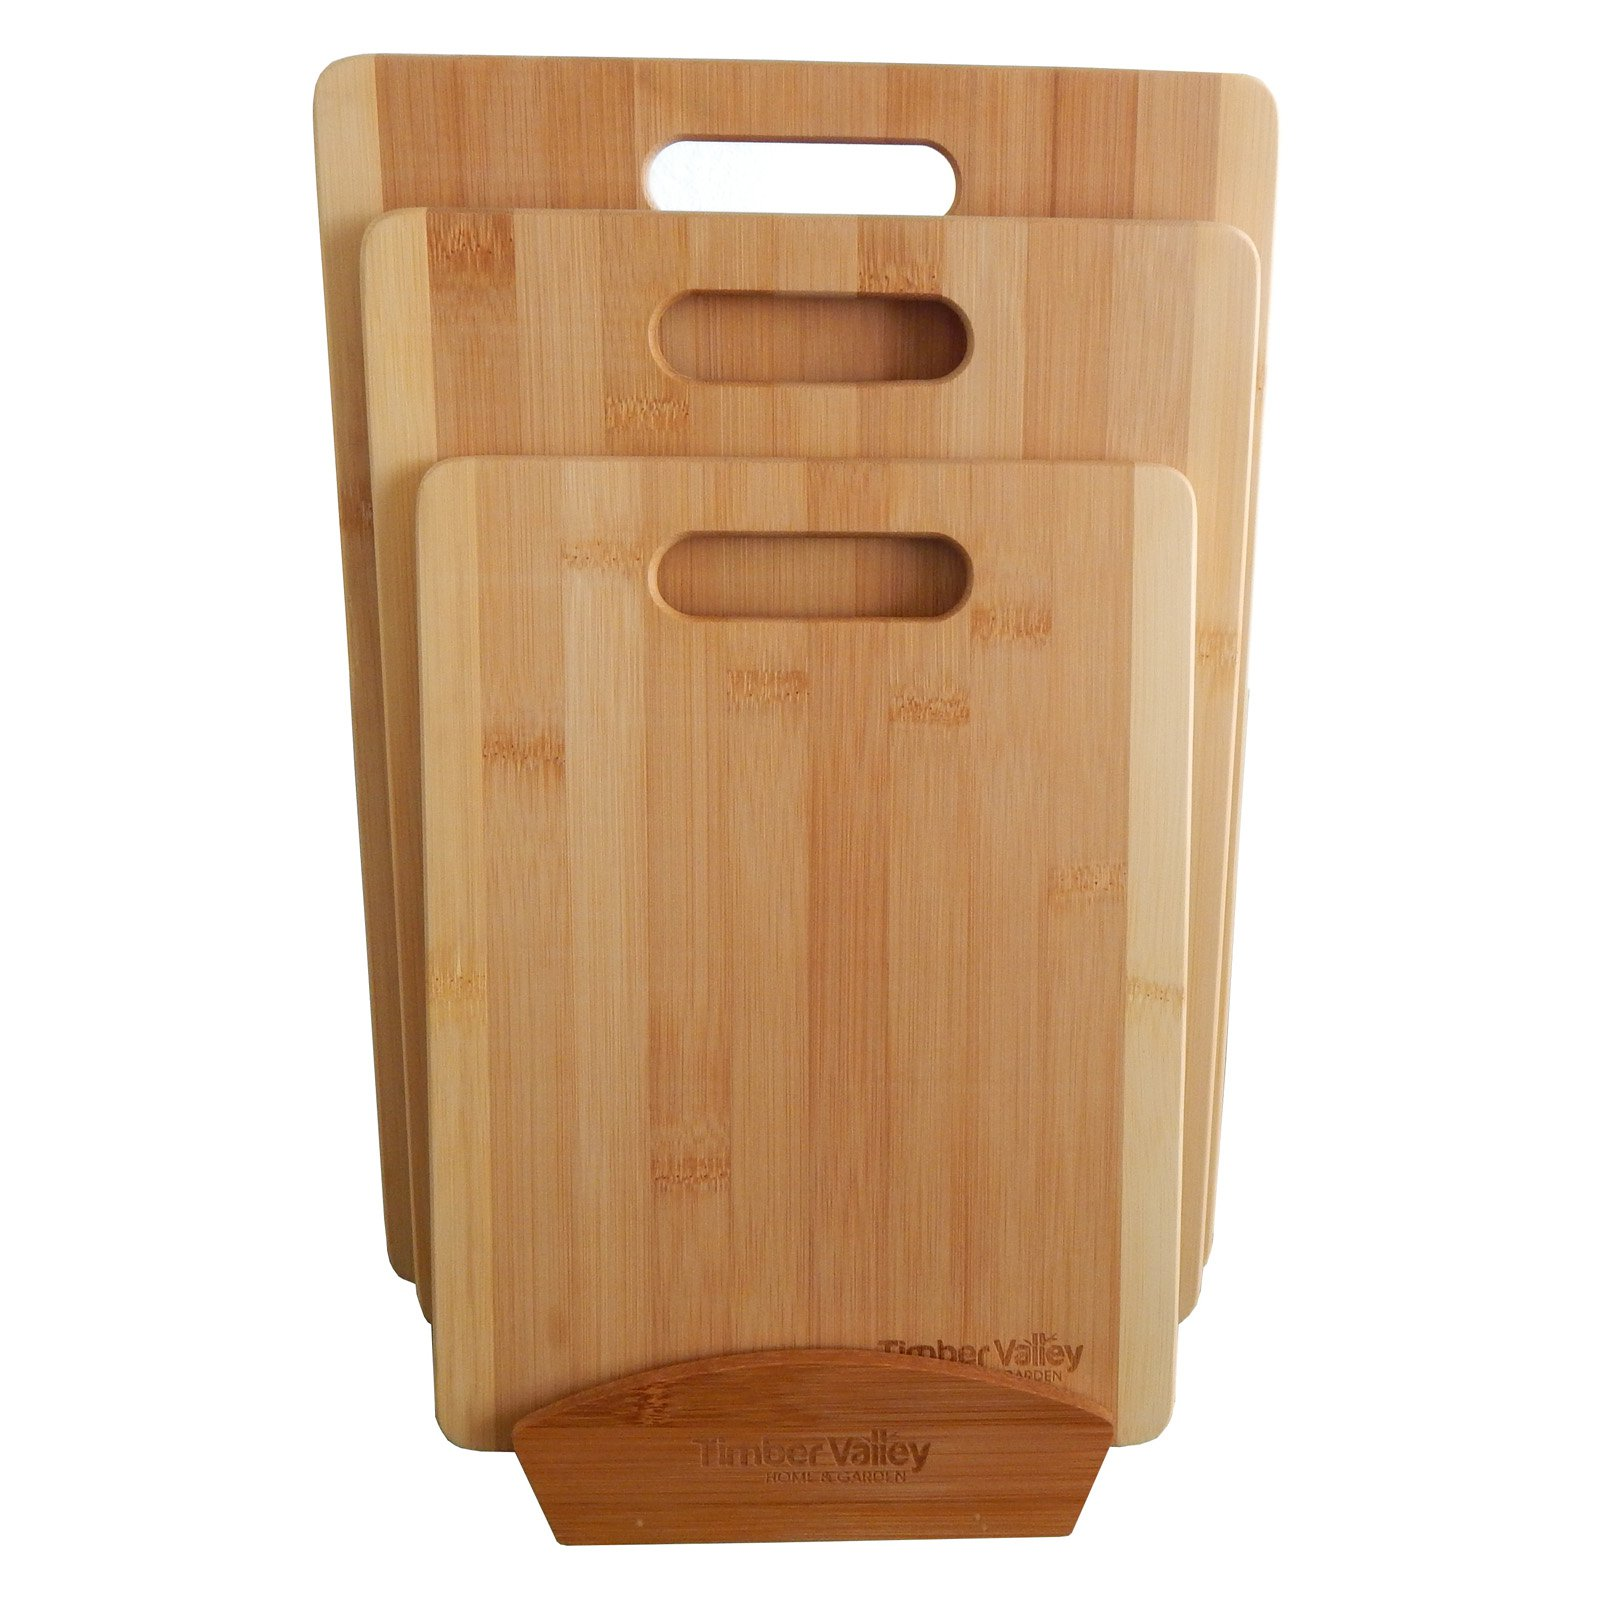 Timber Valley Bamboo 3-piece Cutting Board Set with Stand by Mid America Home & Garden